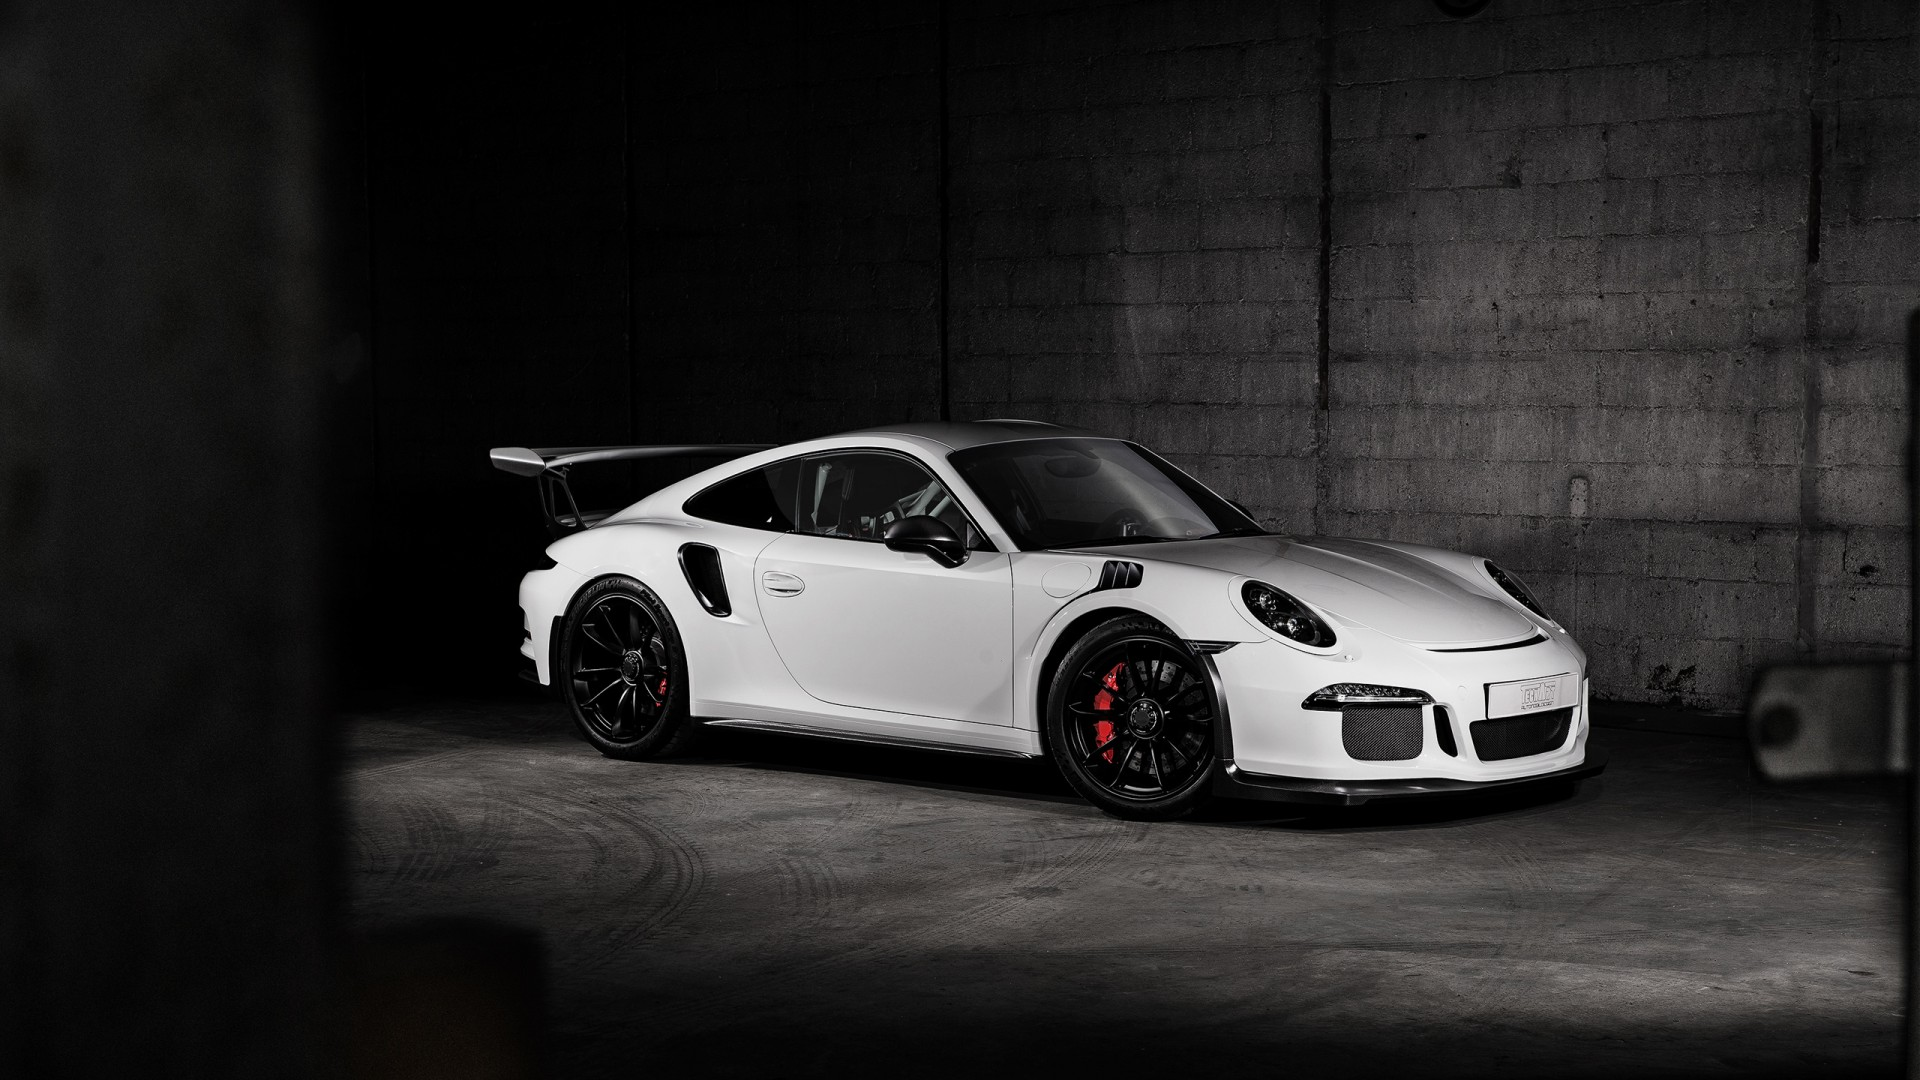 2016 Porsche 911 GT3 RS Carbon TechArt Wallpaper